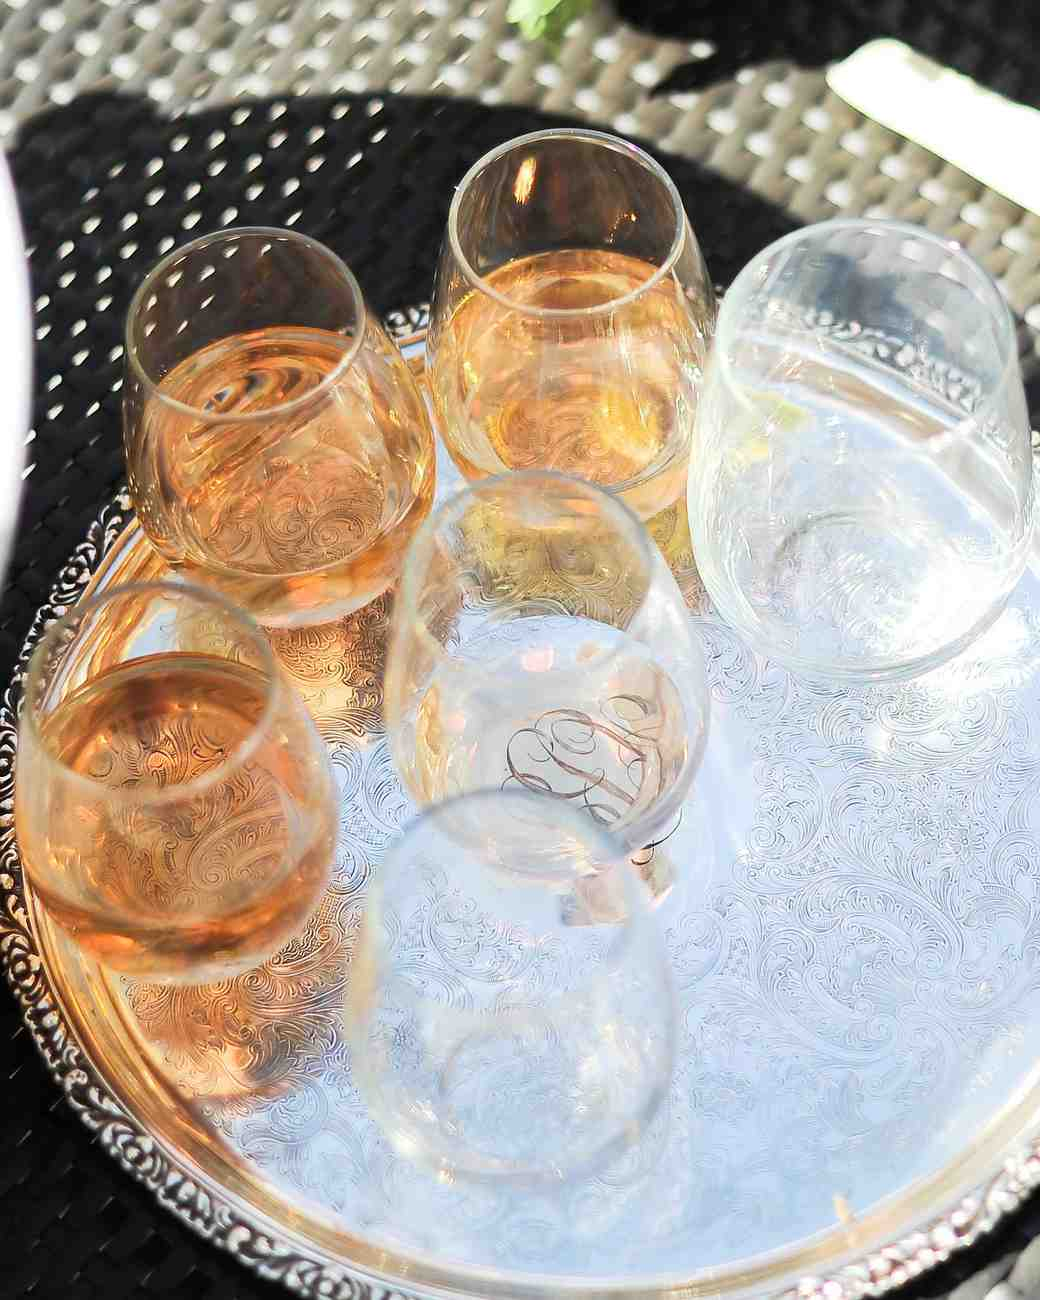 Miraval Rose on Silver Platter at Annie Atkinson's Bridal Shower